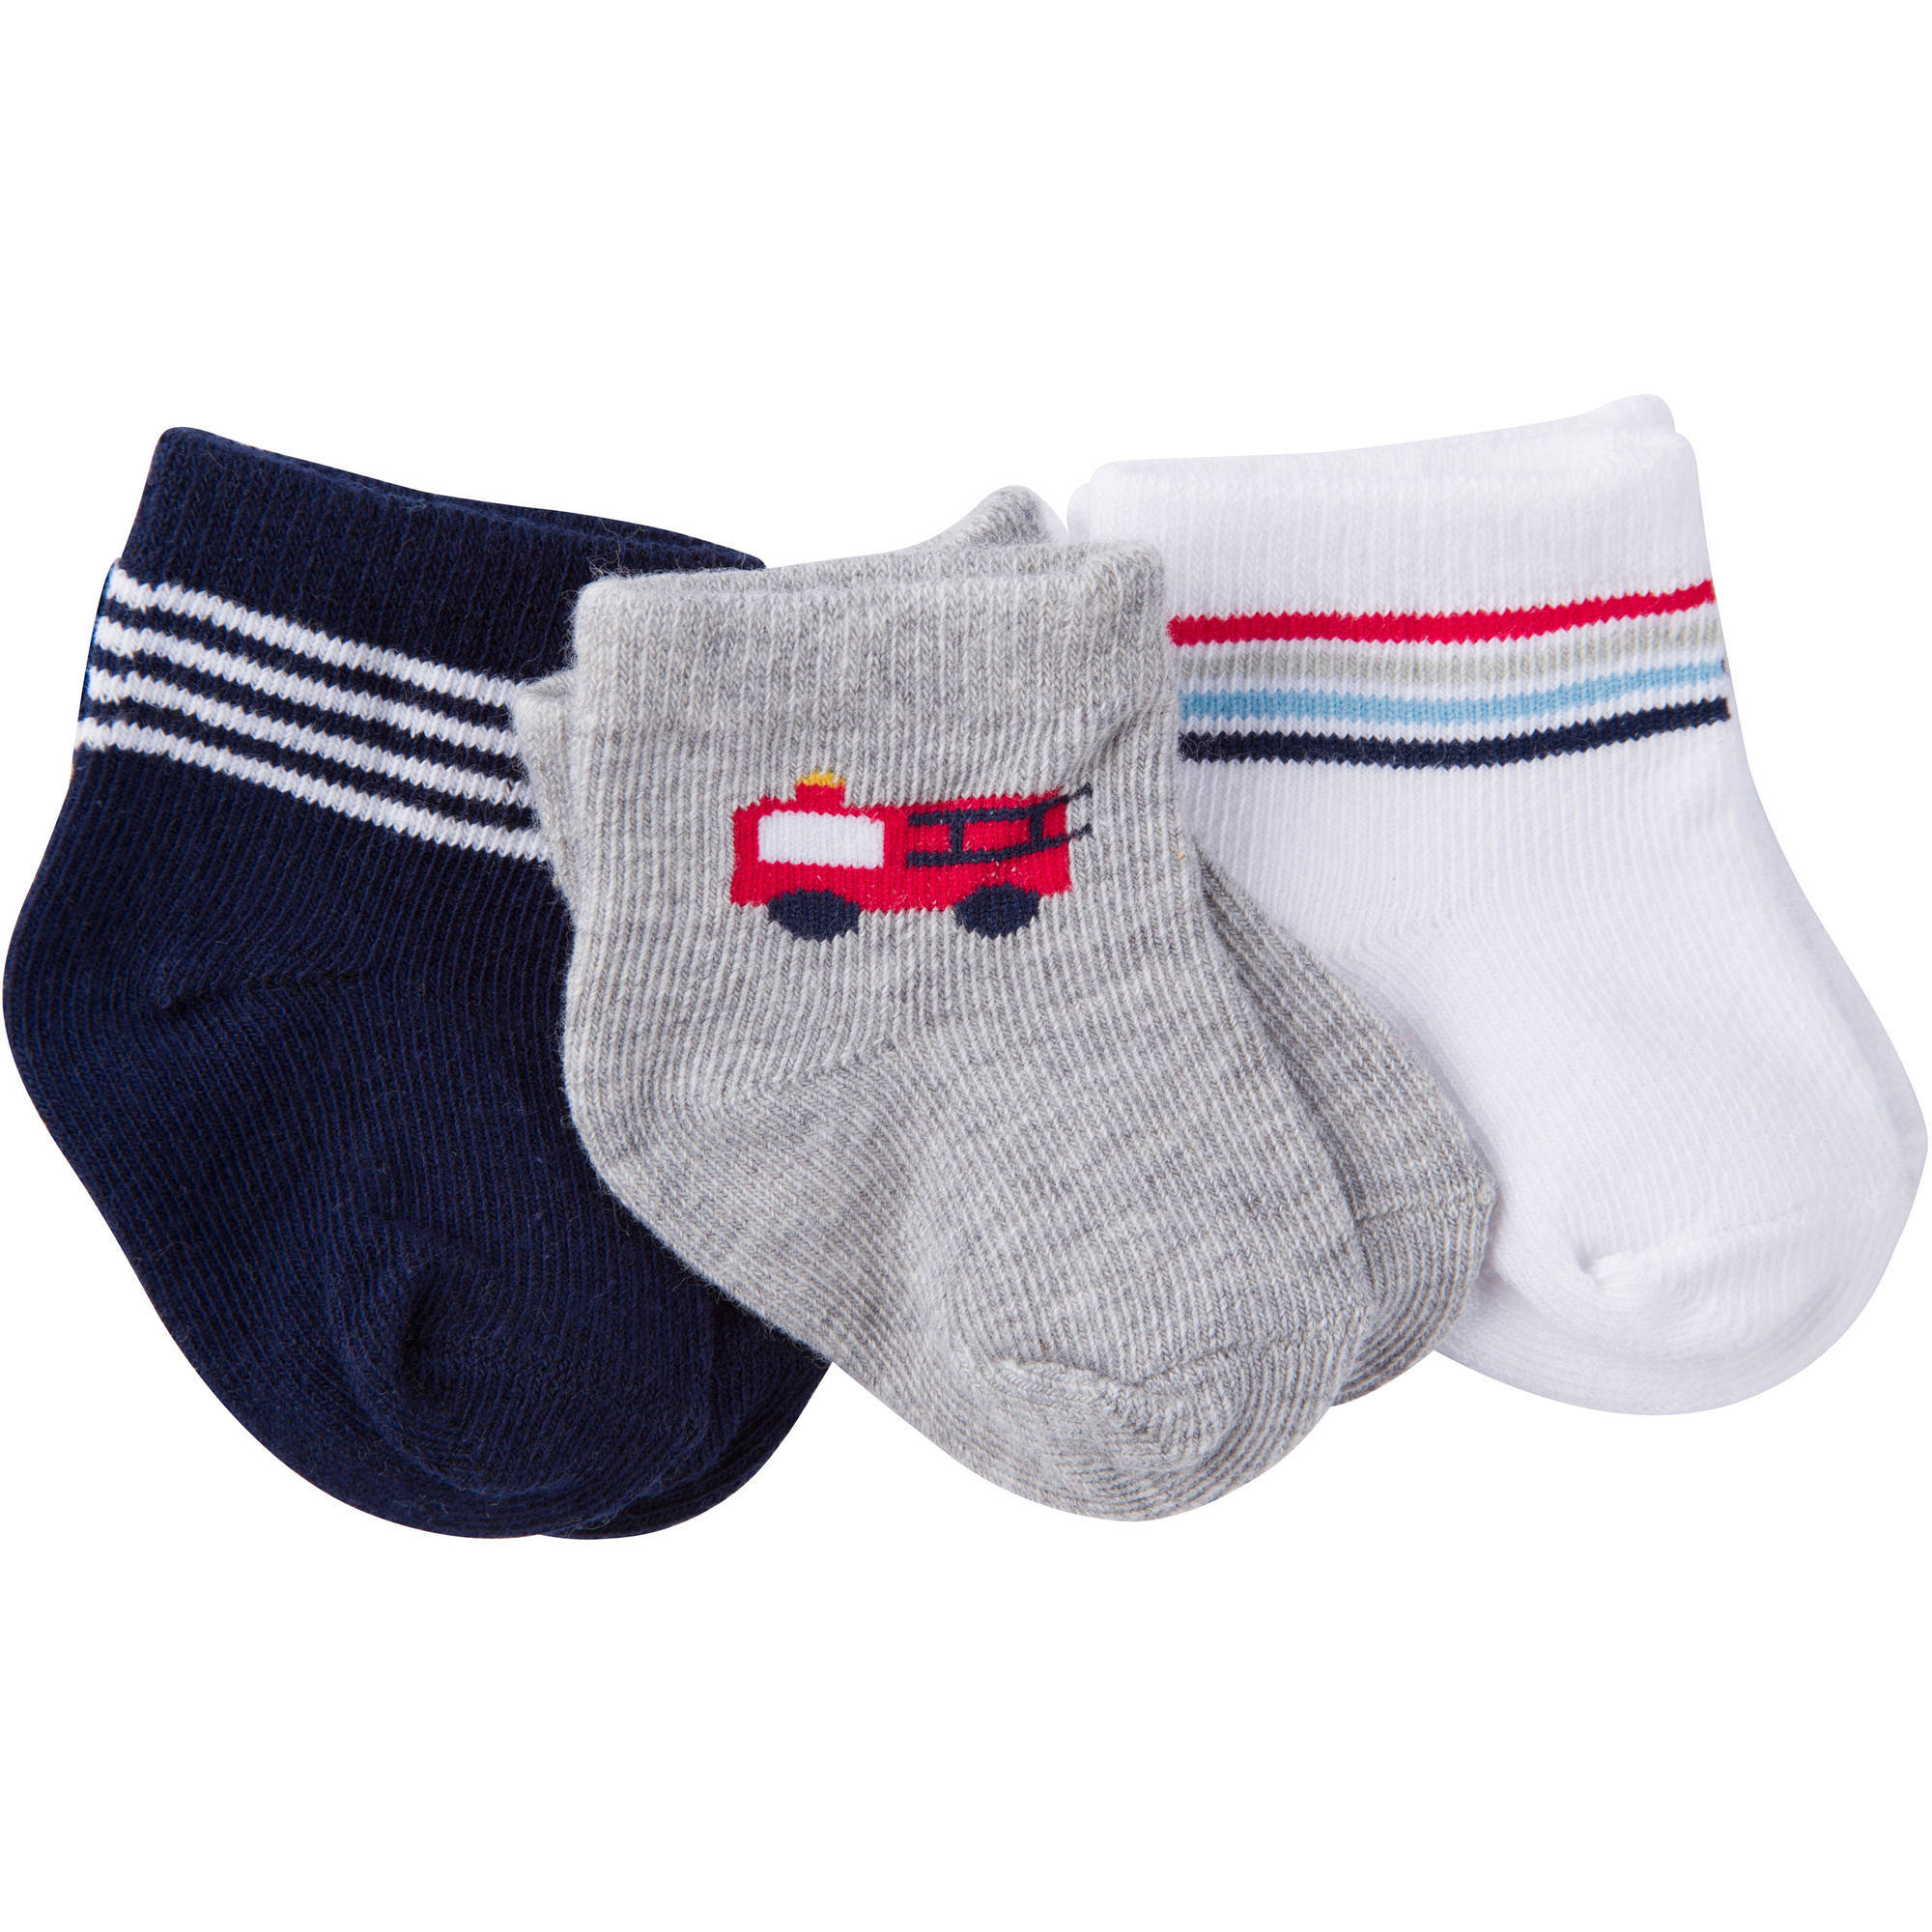 newborn baby boy ankle bootie socks 3pack walmartcom